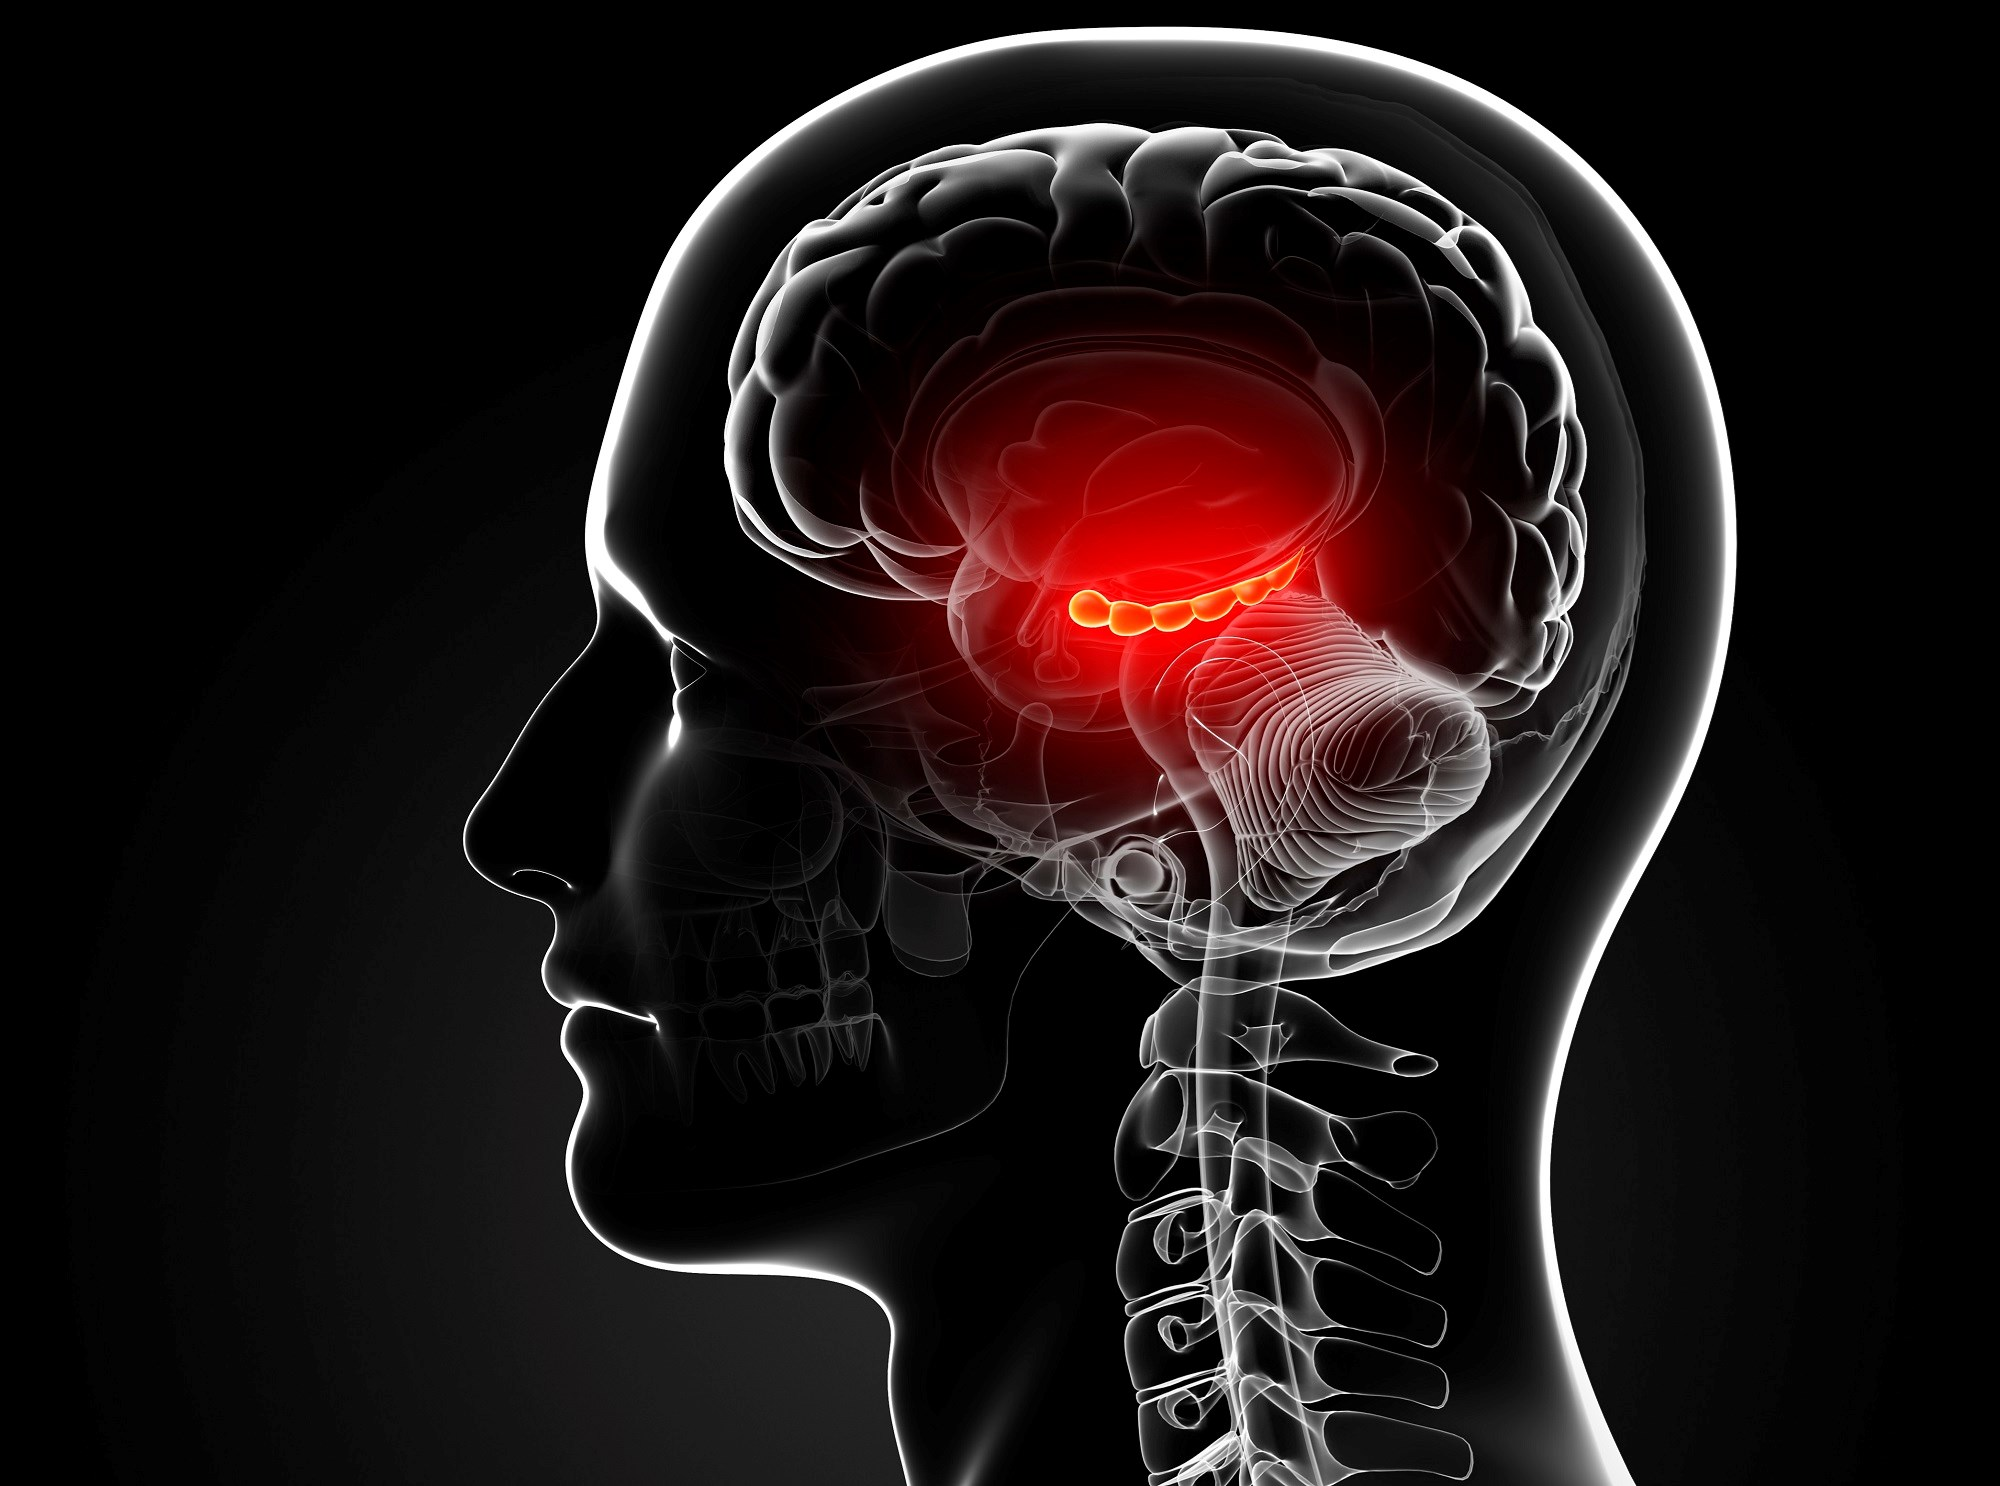 Diabetes and smoking are vascular risk factors associated with hippocampal calcification in older patients with memory issues.